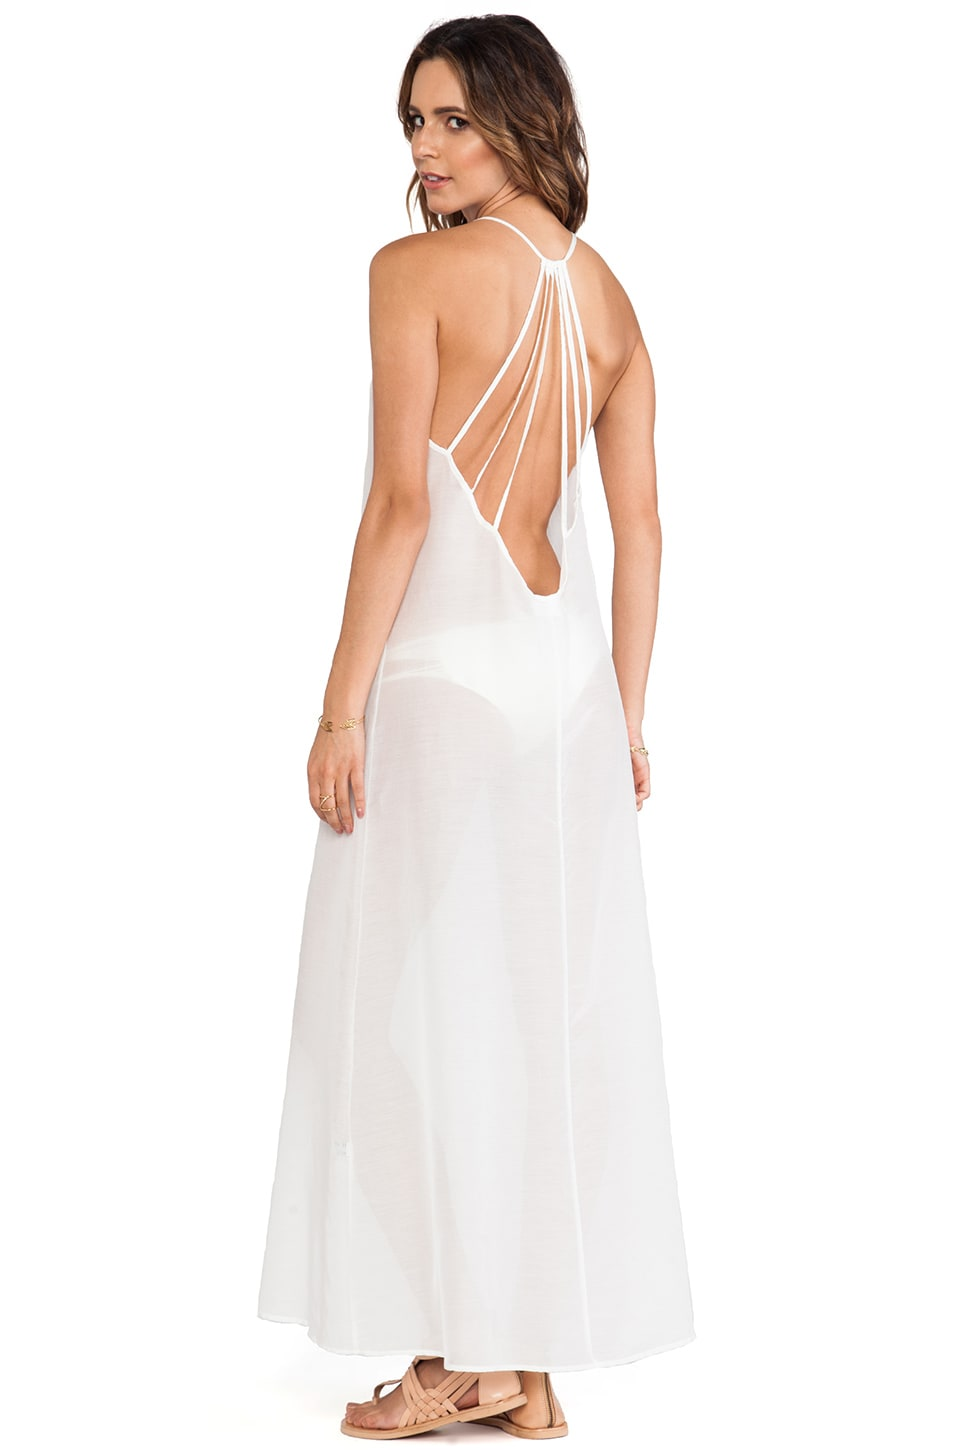 Issa de' mar St. Barts Maxi in White